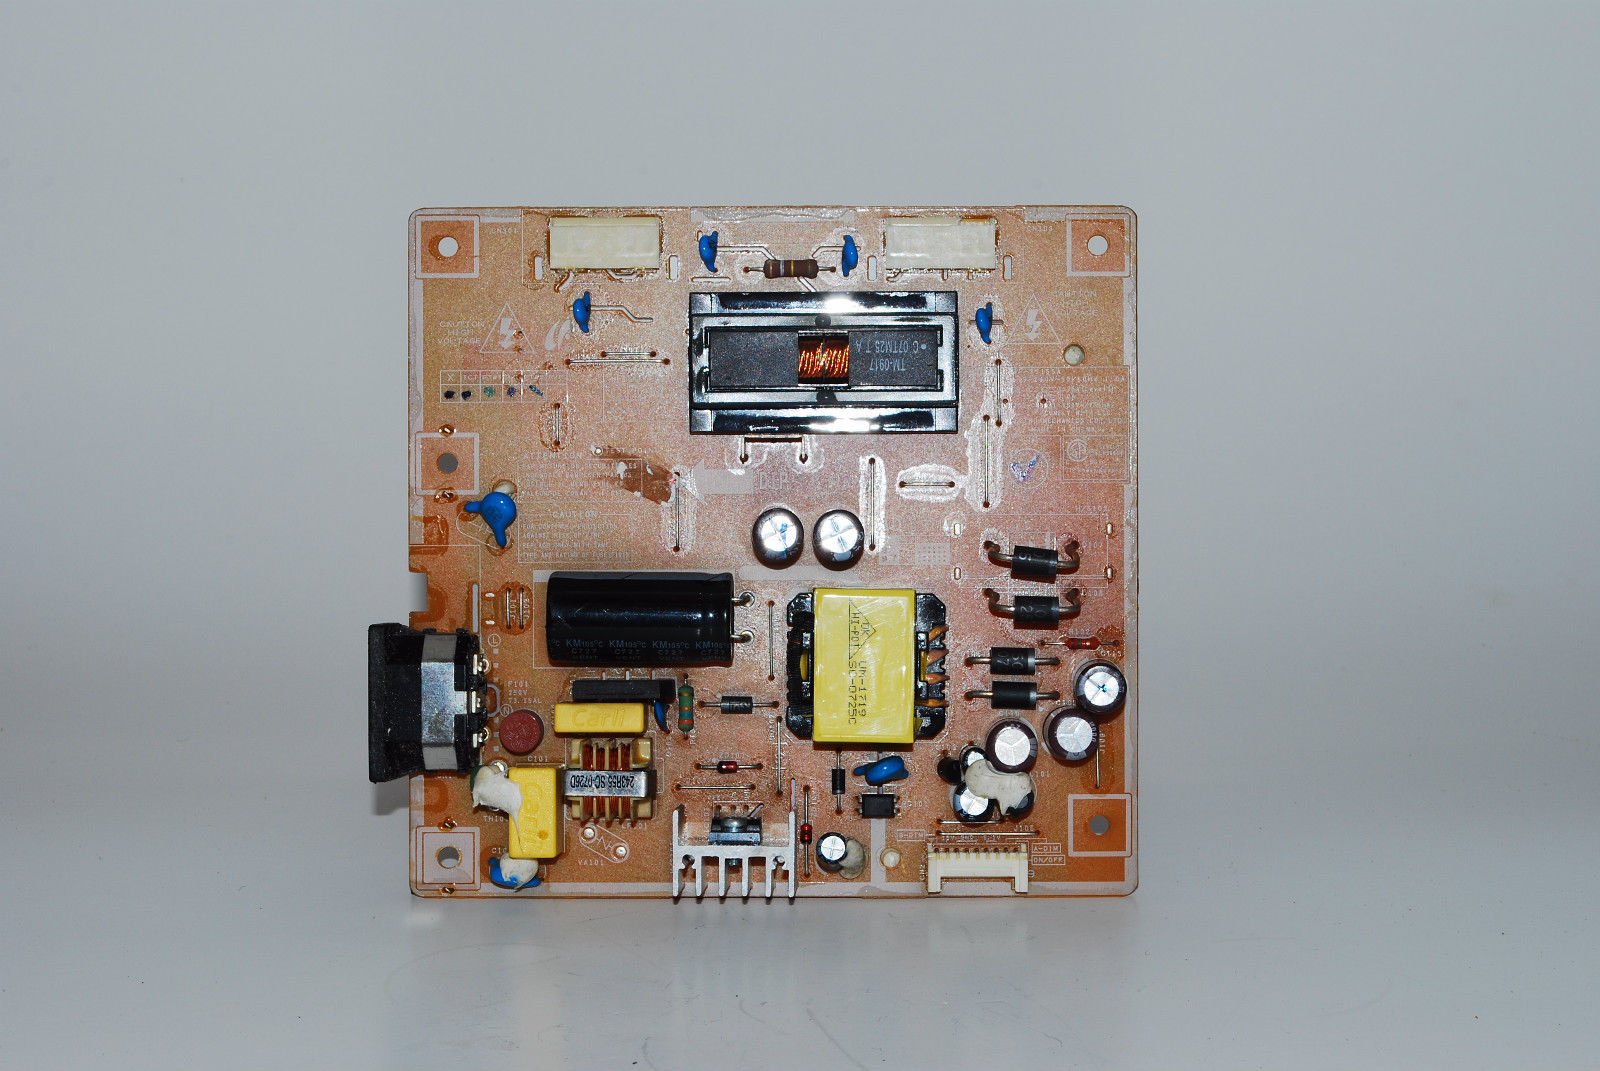 Samsung 932GW 932BW LCD Power Board IP-35155A BN4400124D/E